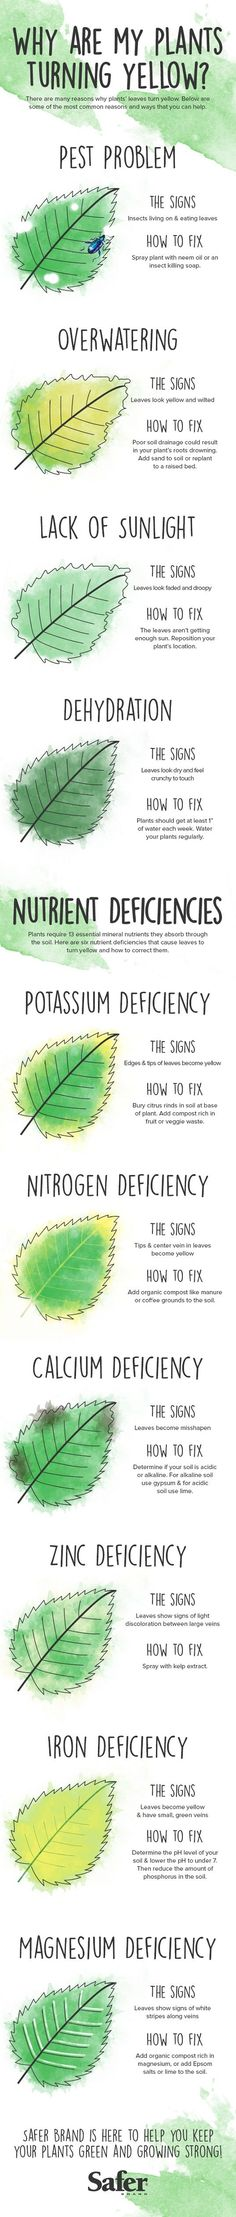 INFOGRAPHIC: Why are my plants turning yellow?